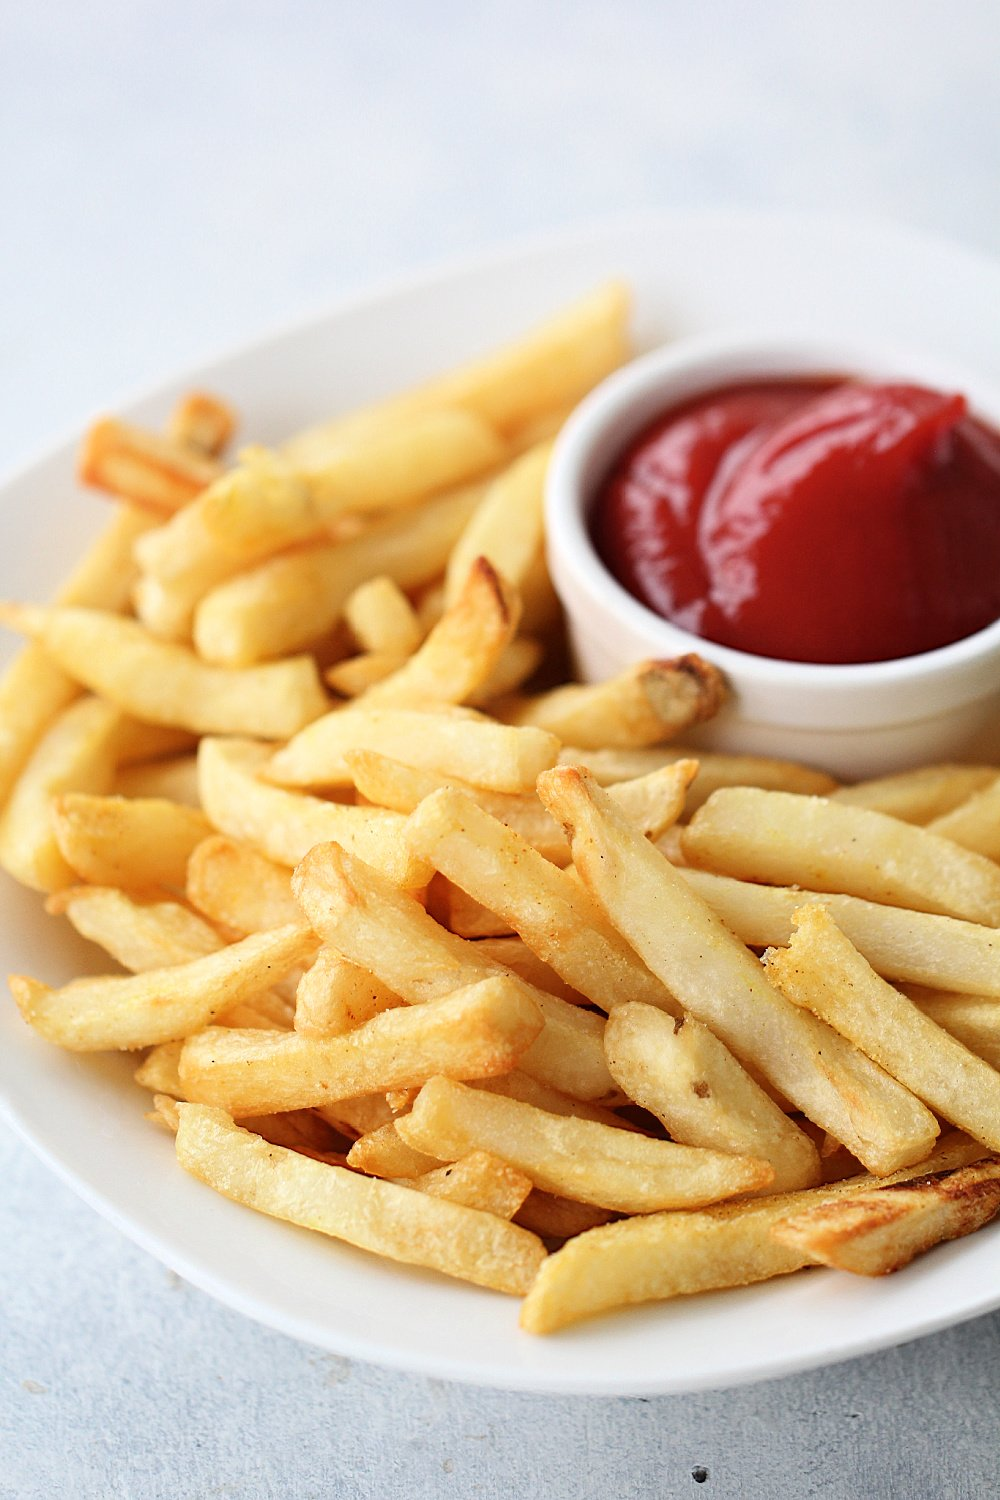 How To Cook Air Fryer Frozen French Fries